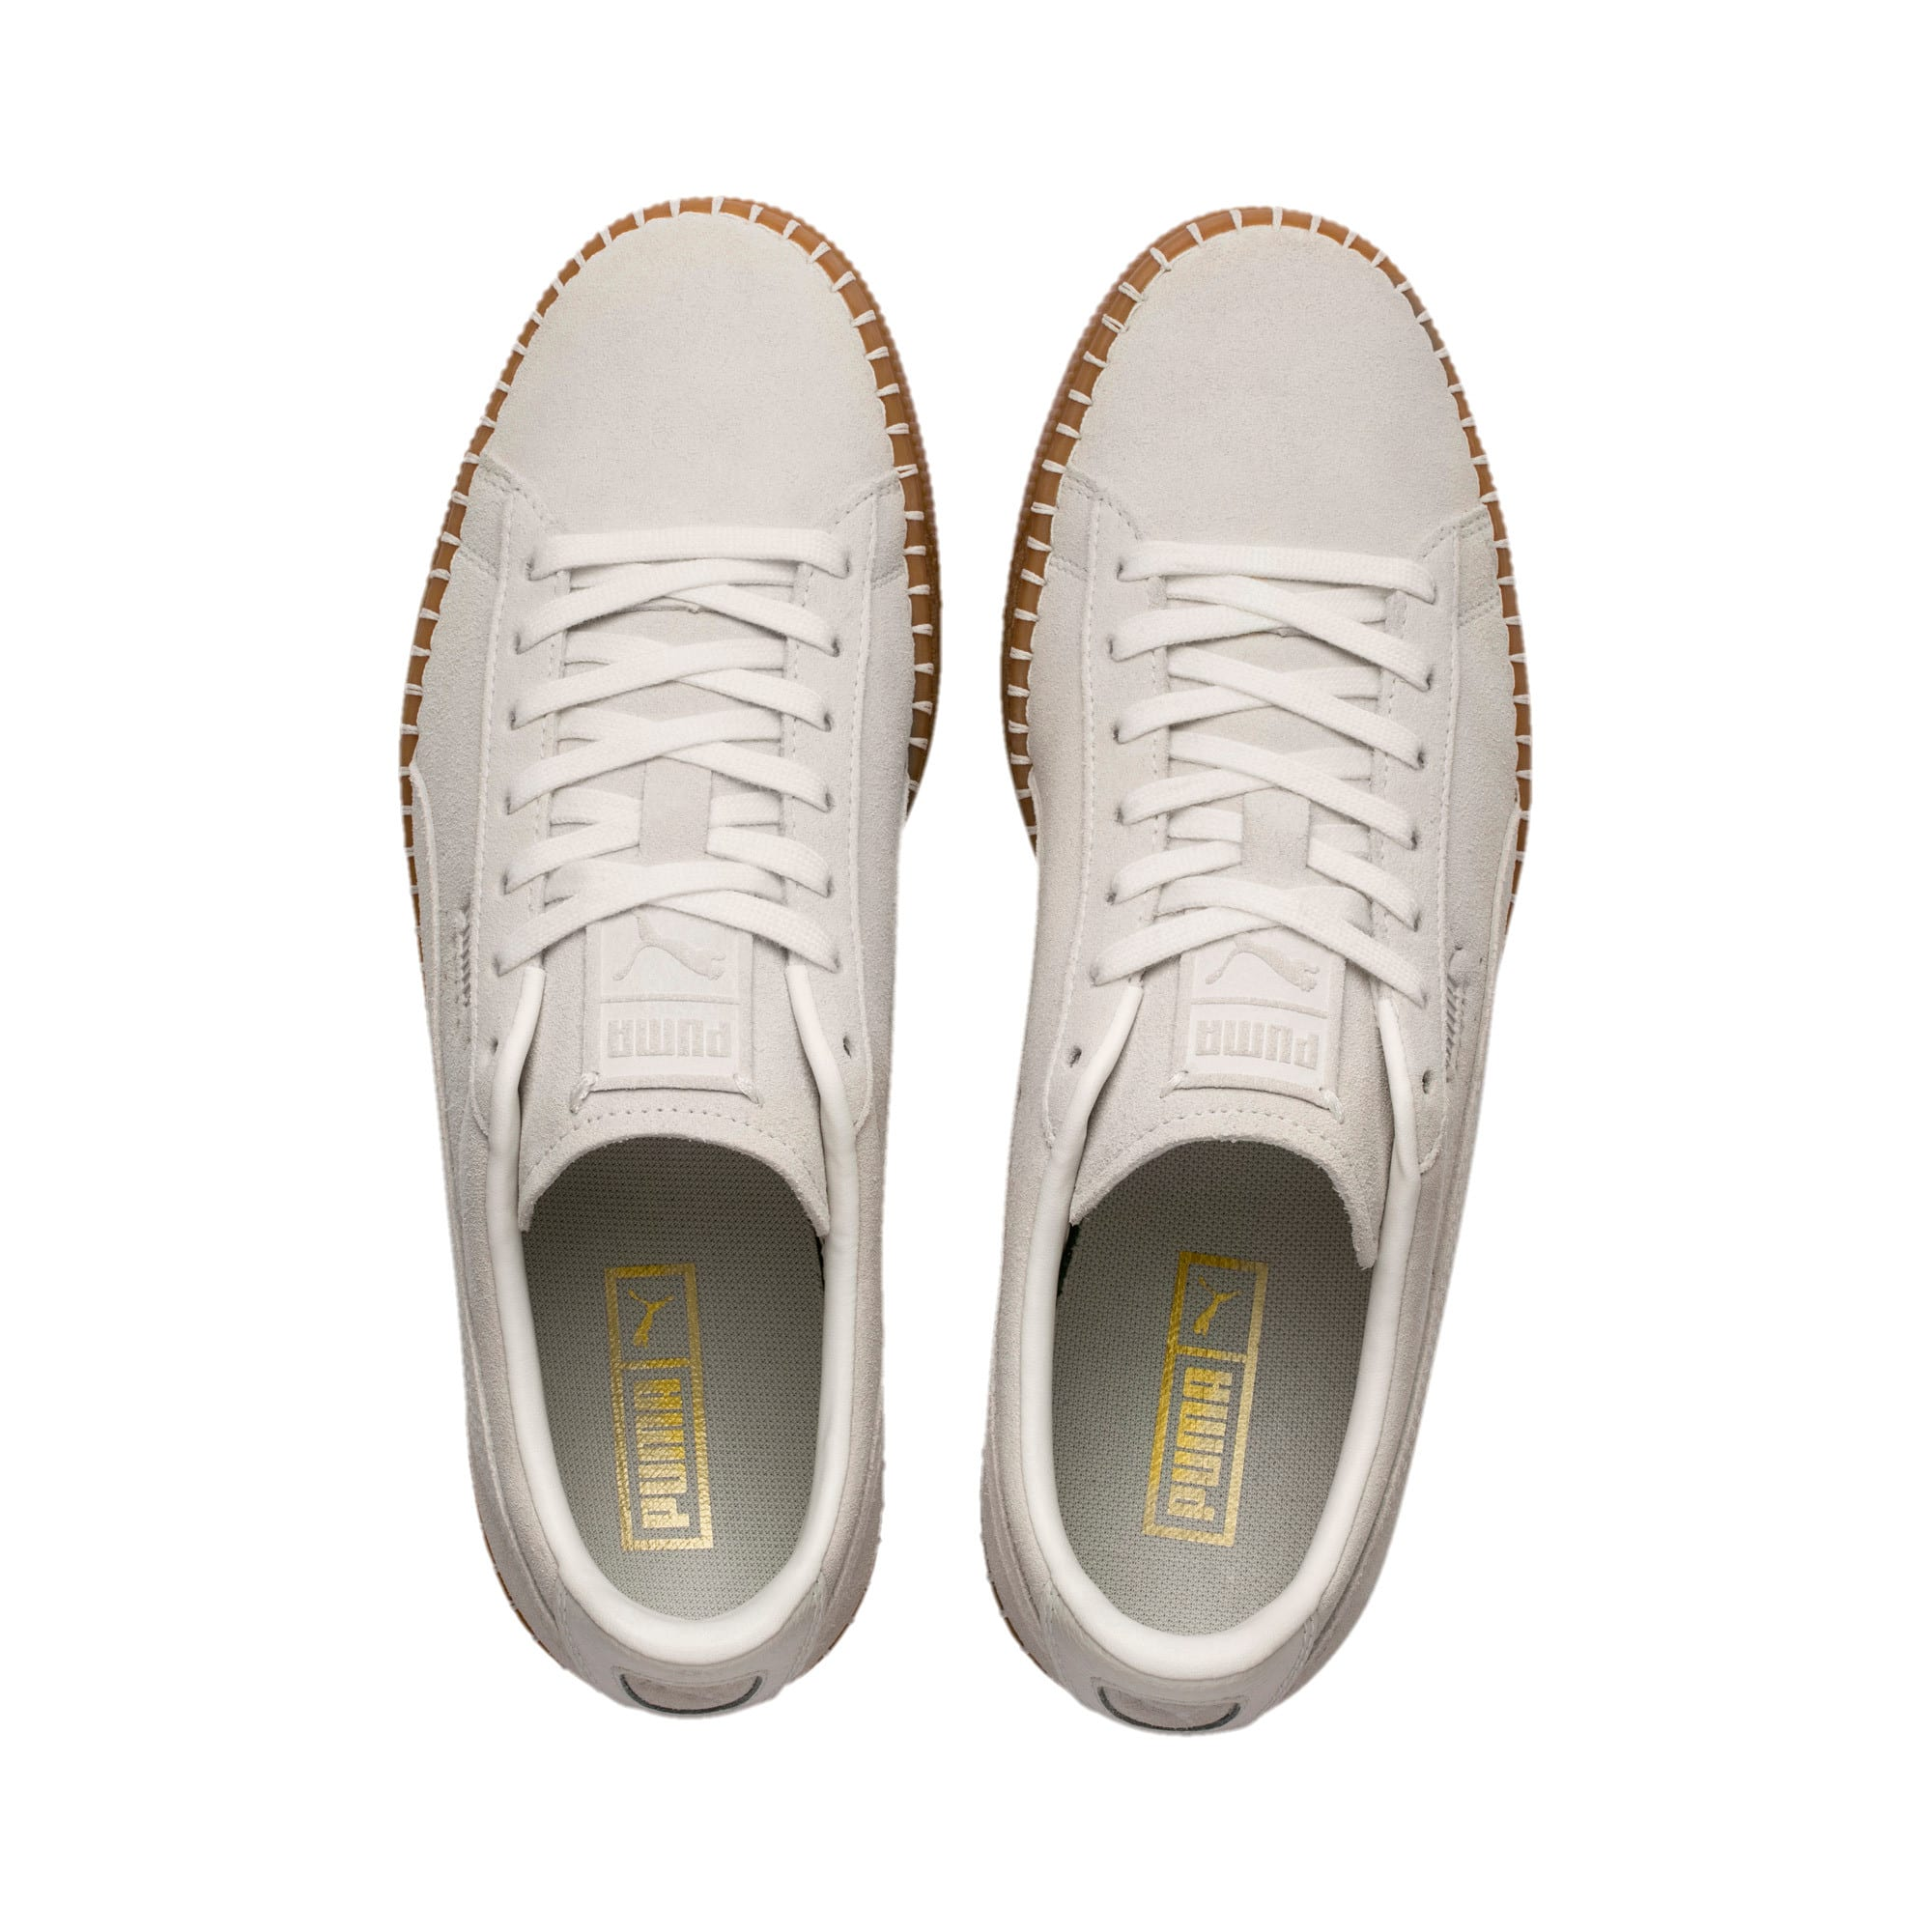 Thumbnail 7 of Suede Classic Blanket Stitch Trainers, Whisper White-Gum, medium-IND